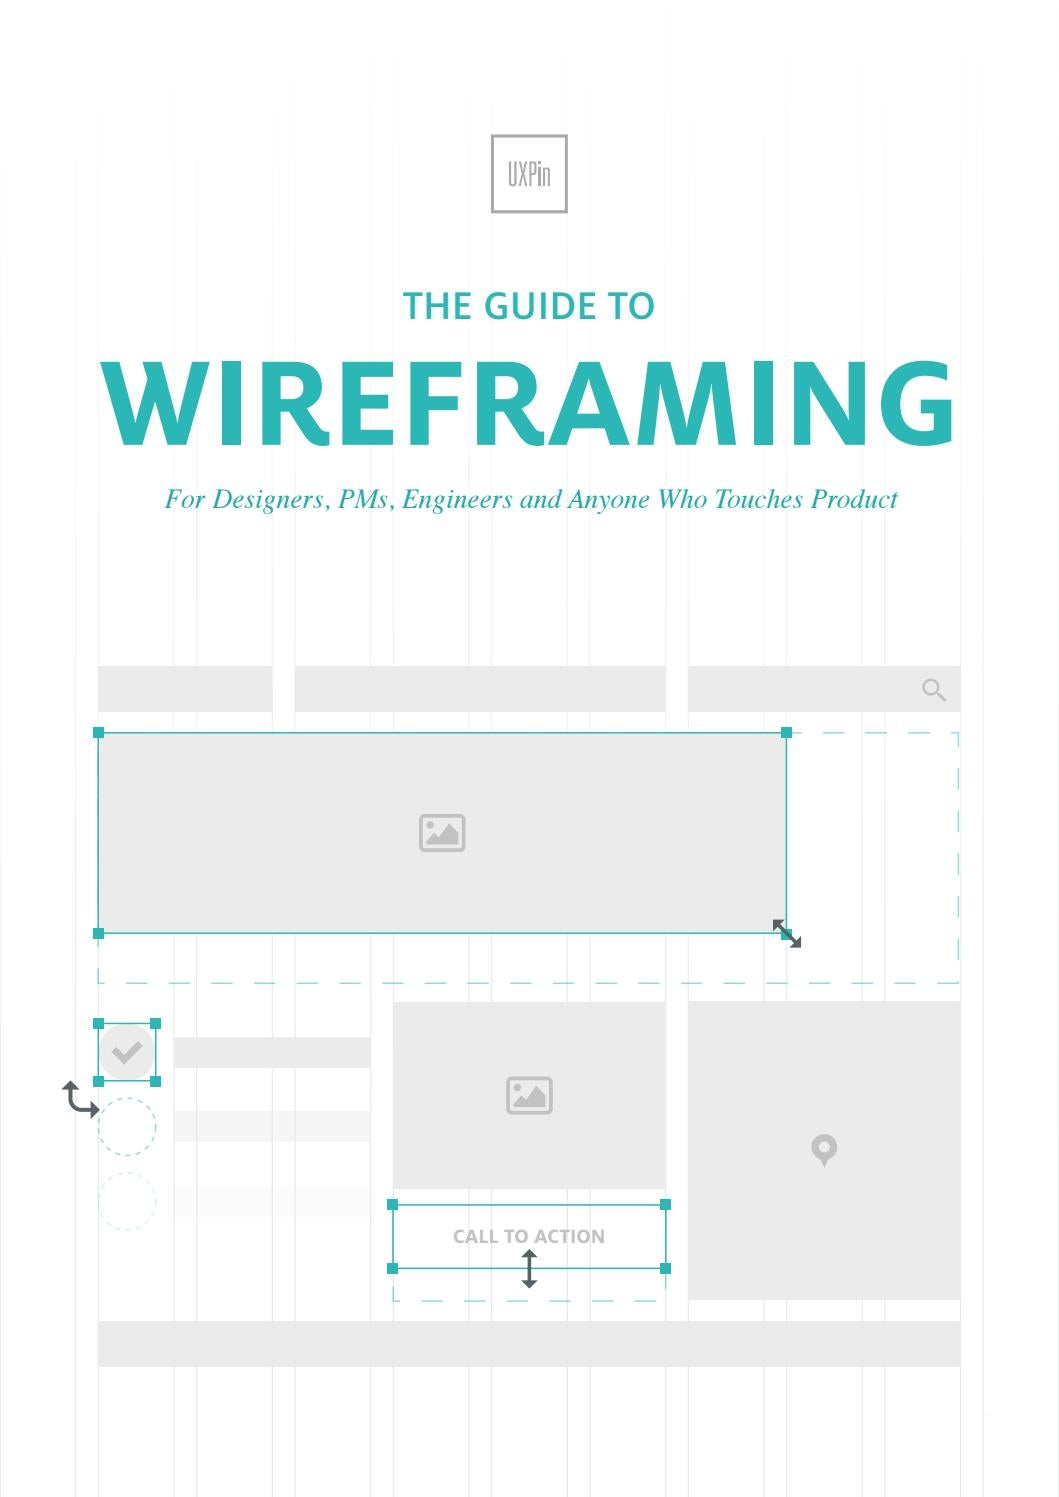 The Guide to Wireframing: For Designers, PMs, Engineers and Anyone Who  Touches Product by UX Pin by mkyu - issuu